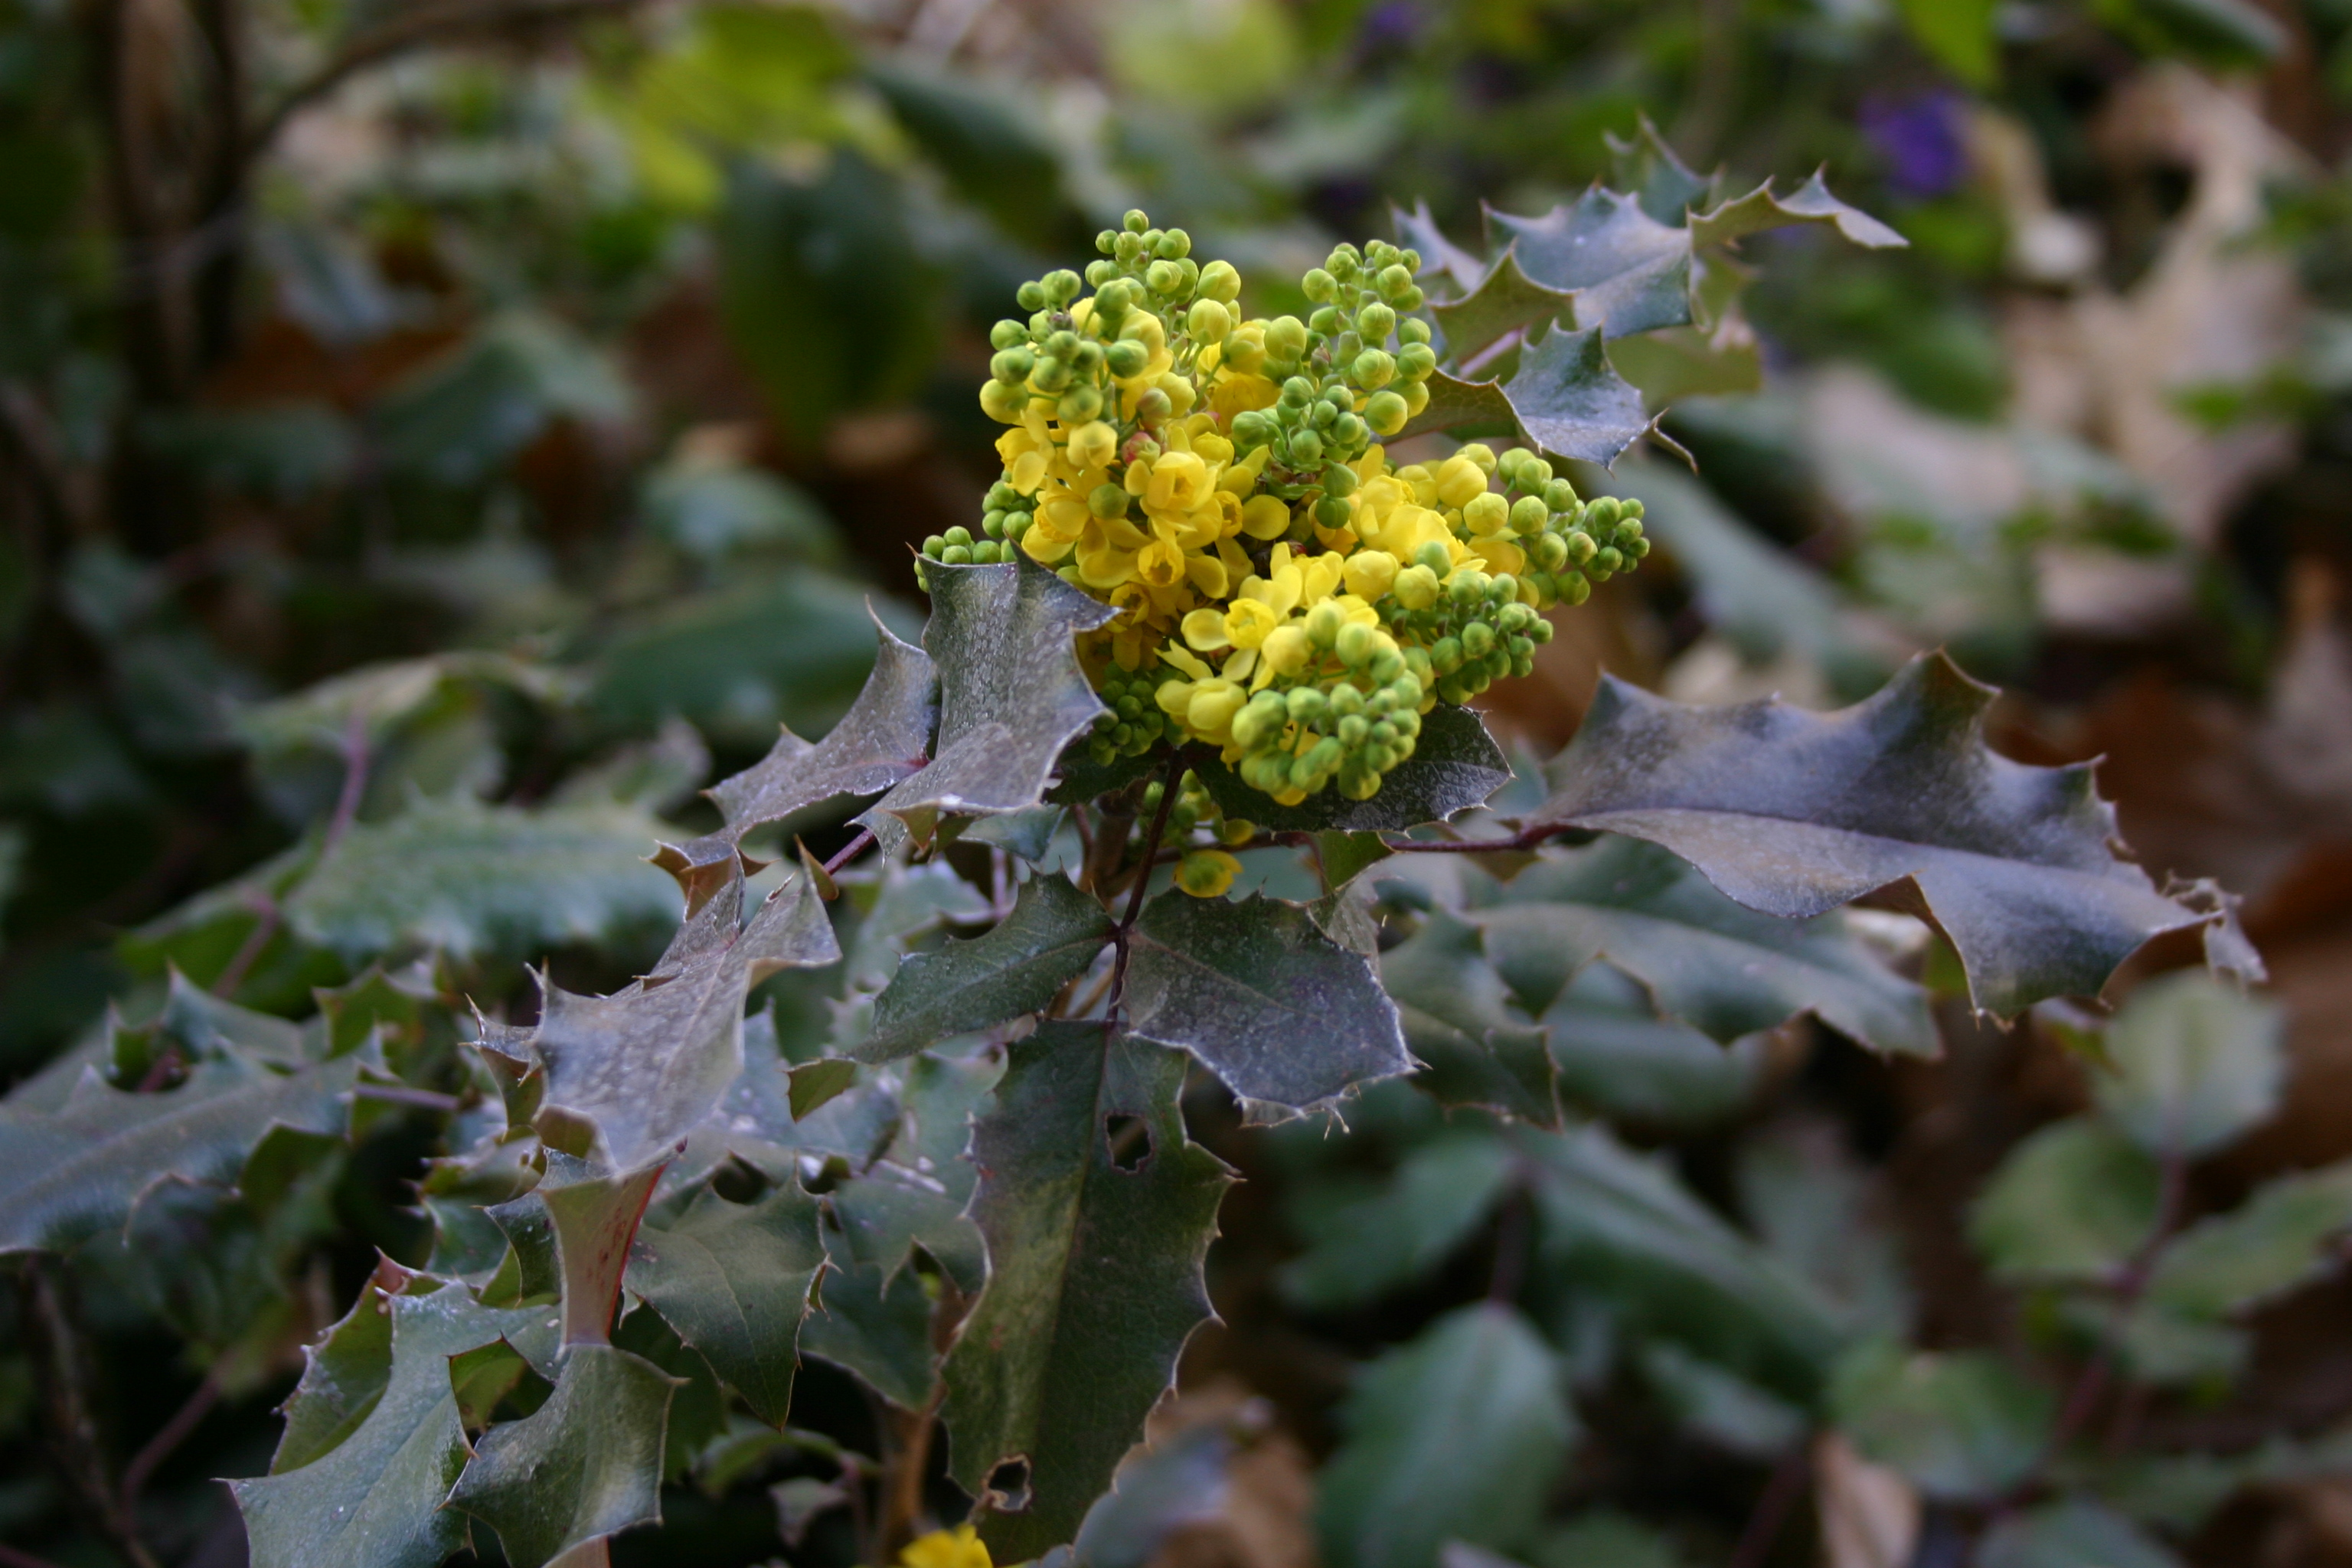 Yellow and green clusters of flowers resemble berries on a leafy bush.